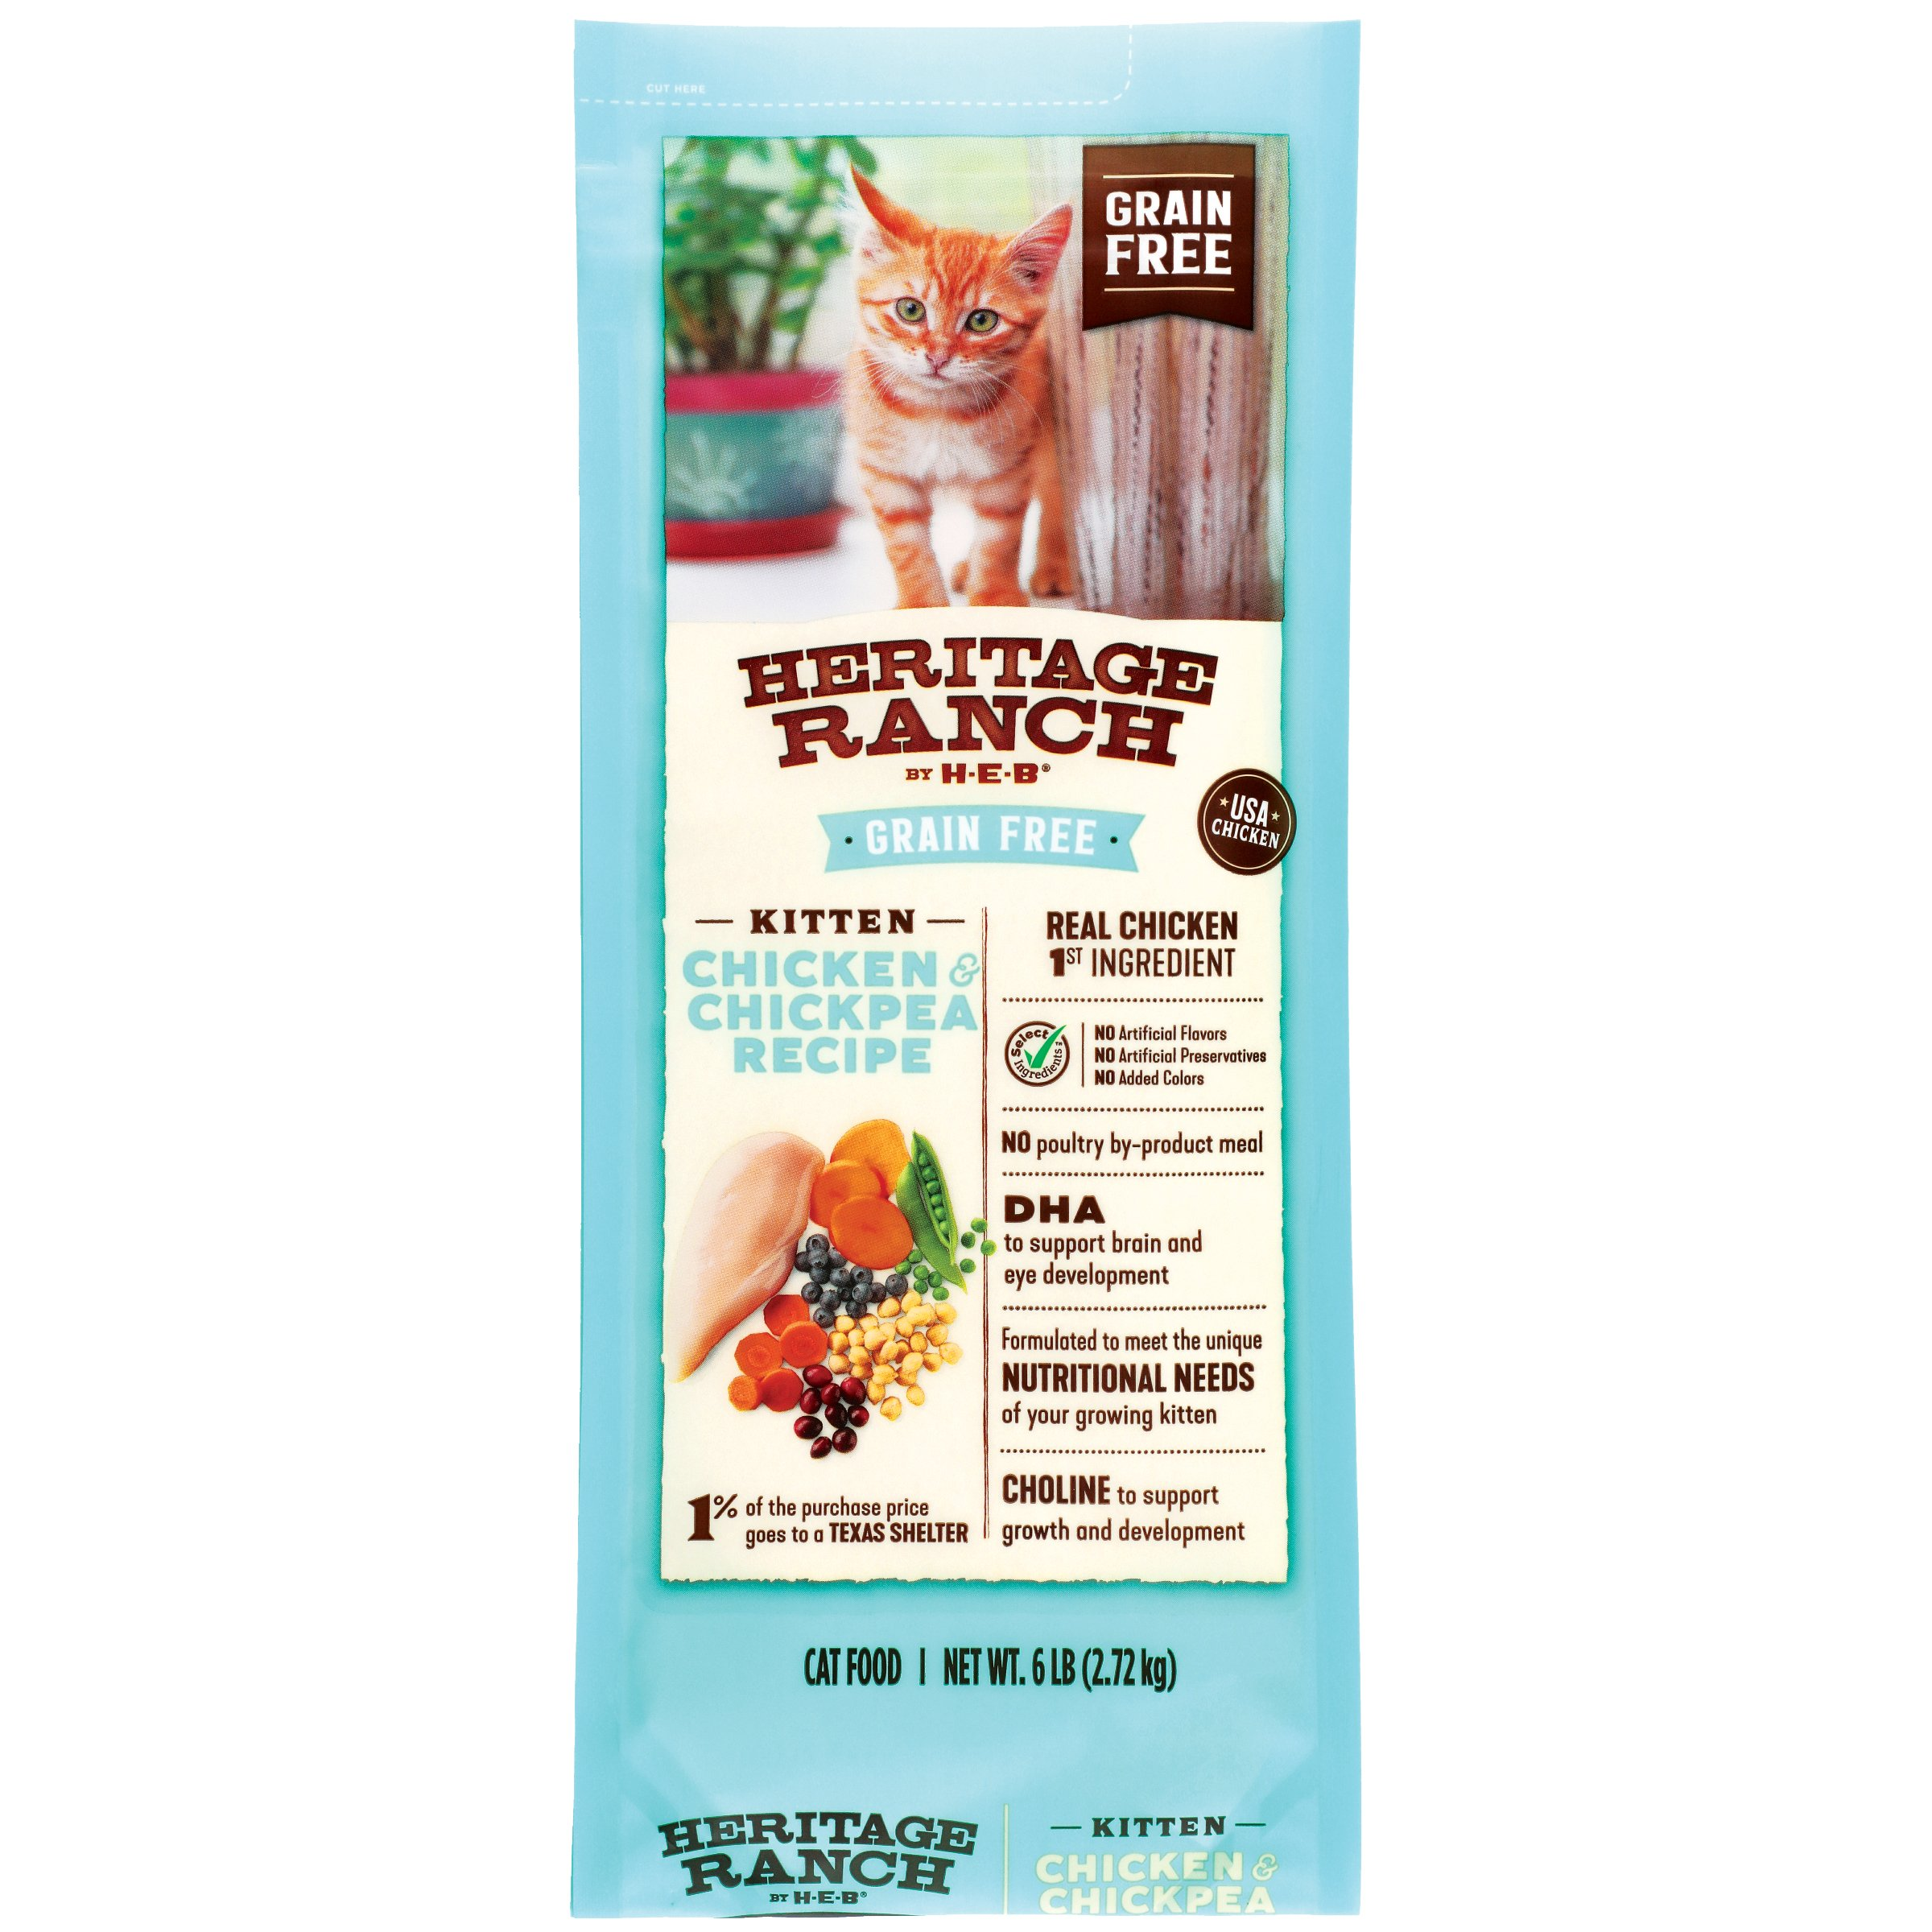 Heritage Ranch By H E B Grain Free Kitten Formula Dry Cat Food Shop Cats At H E B